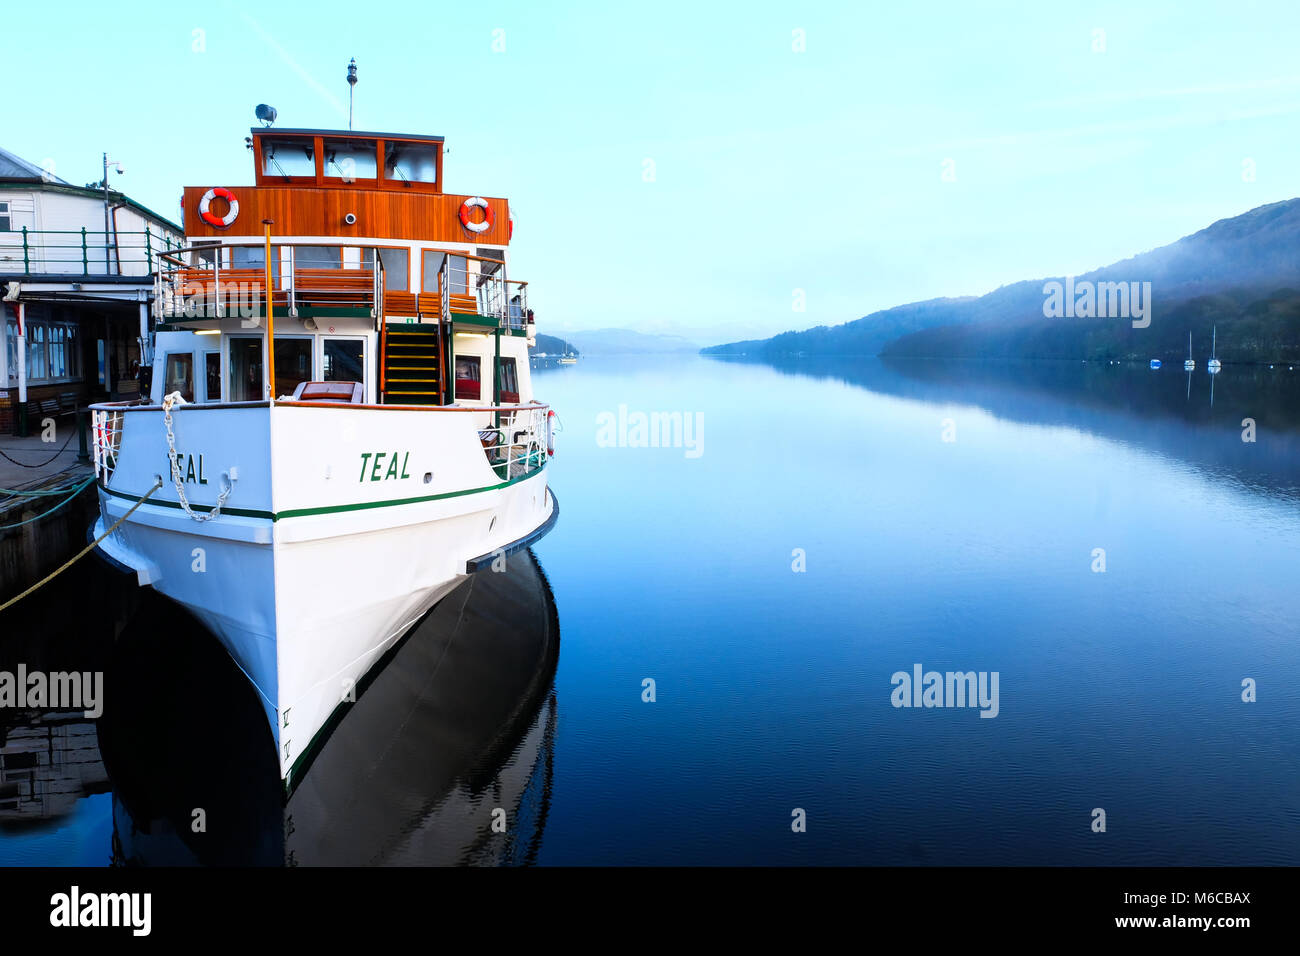 white and wooden vintage Steam ferry moored on lake Windermere, Lake District, UK, early morning view across the - Stock Image